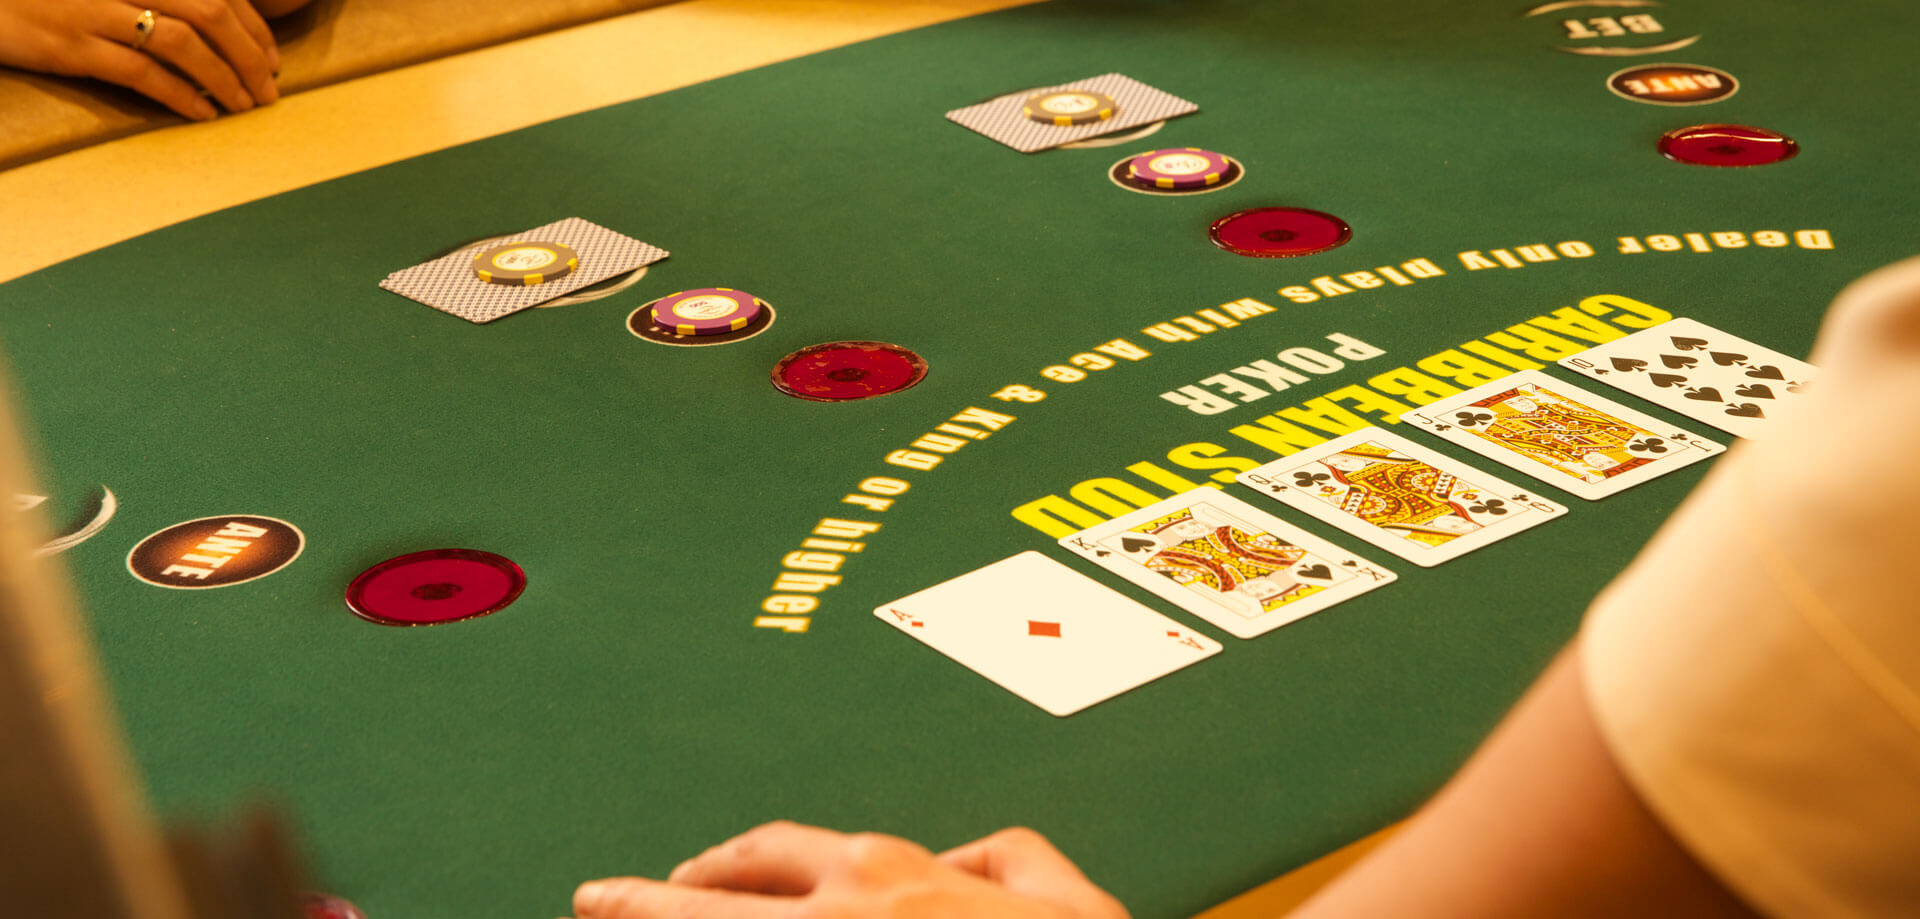 Caribbean-Stud-Poker-Review-Guide-for-Players-Online